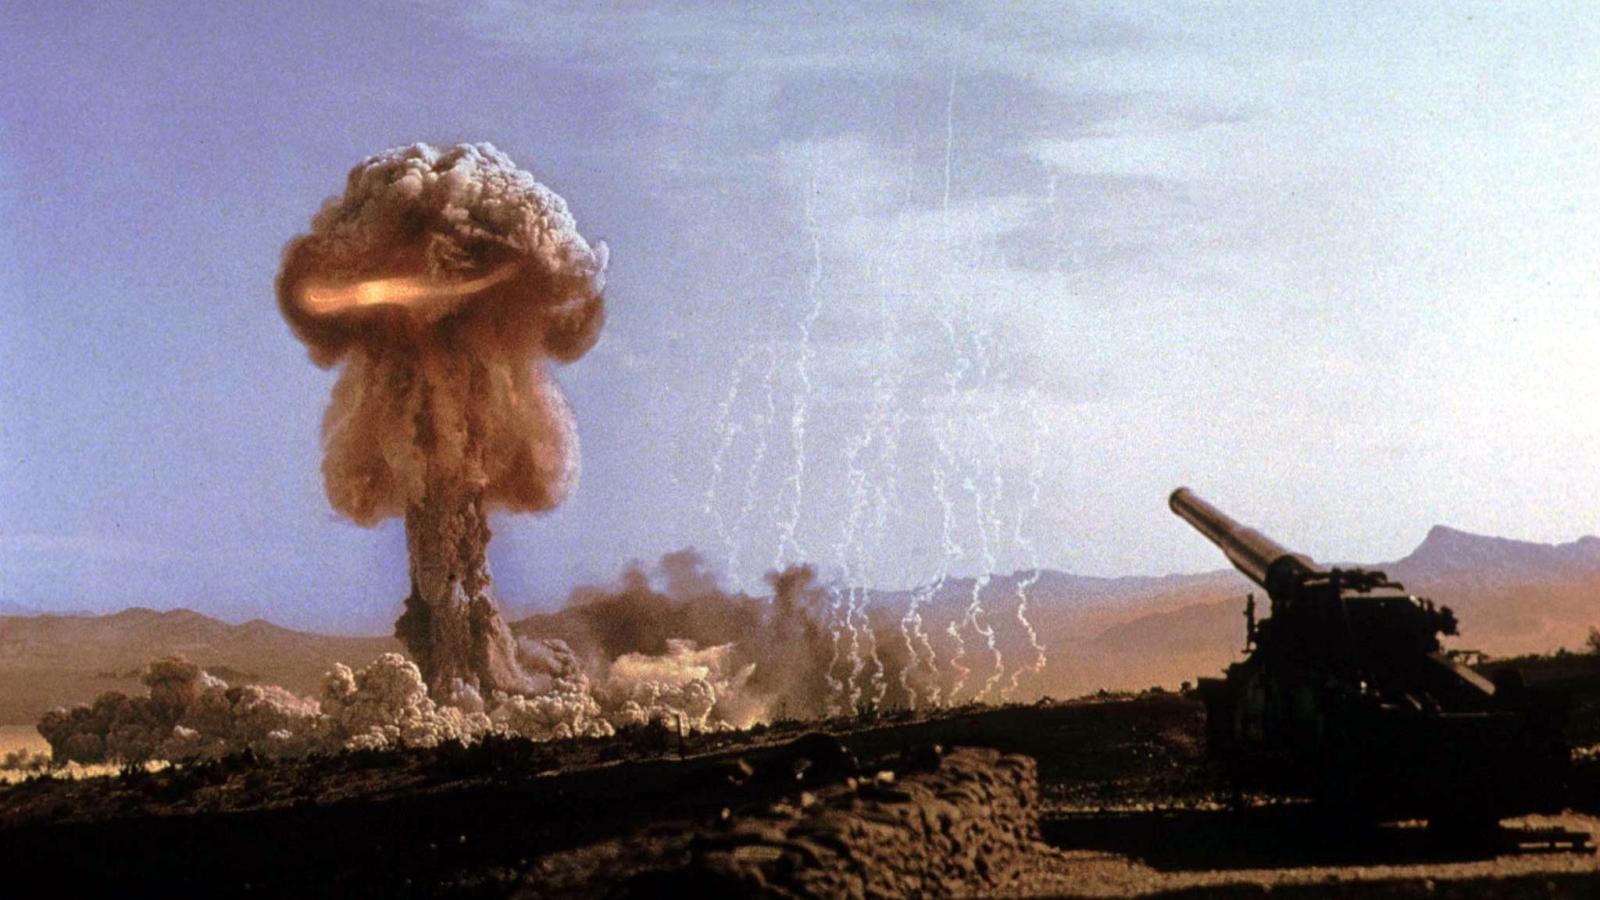 Us Nuclear Tests Killed American Civilians On A Scale Comparable To